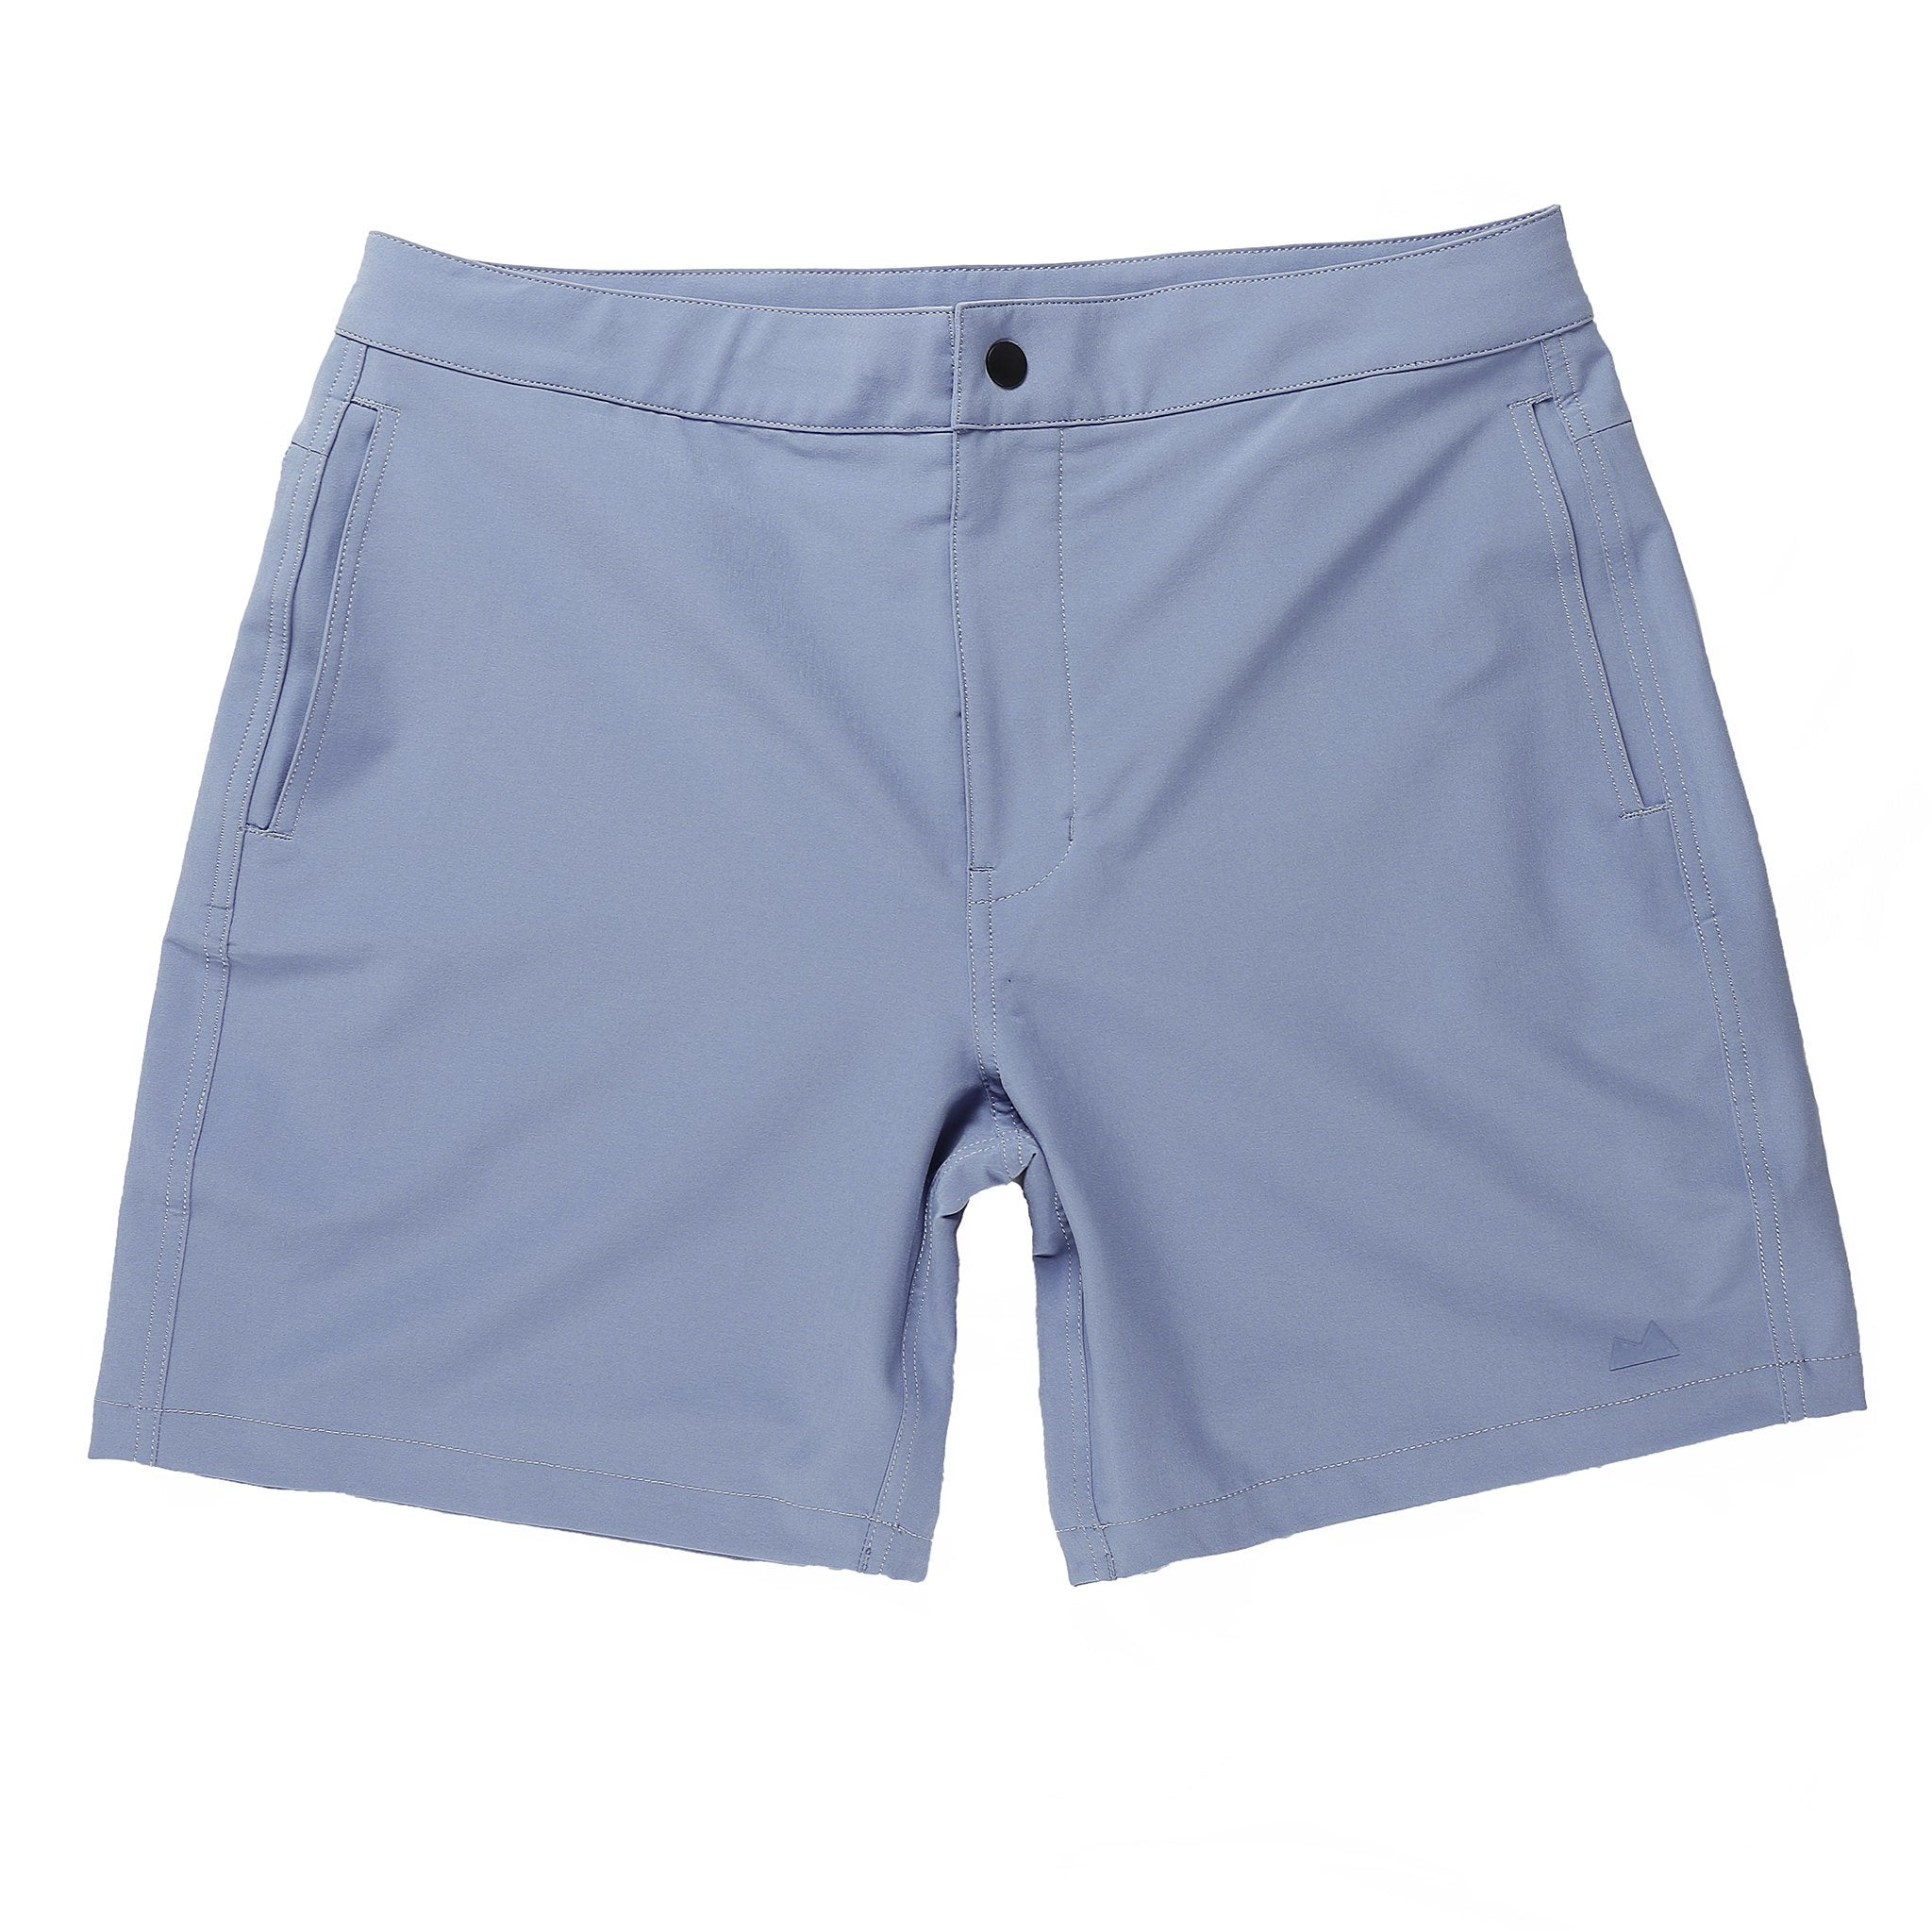 Seacliff Swim Short in Marine